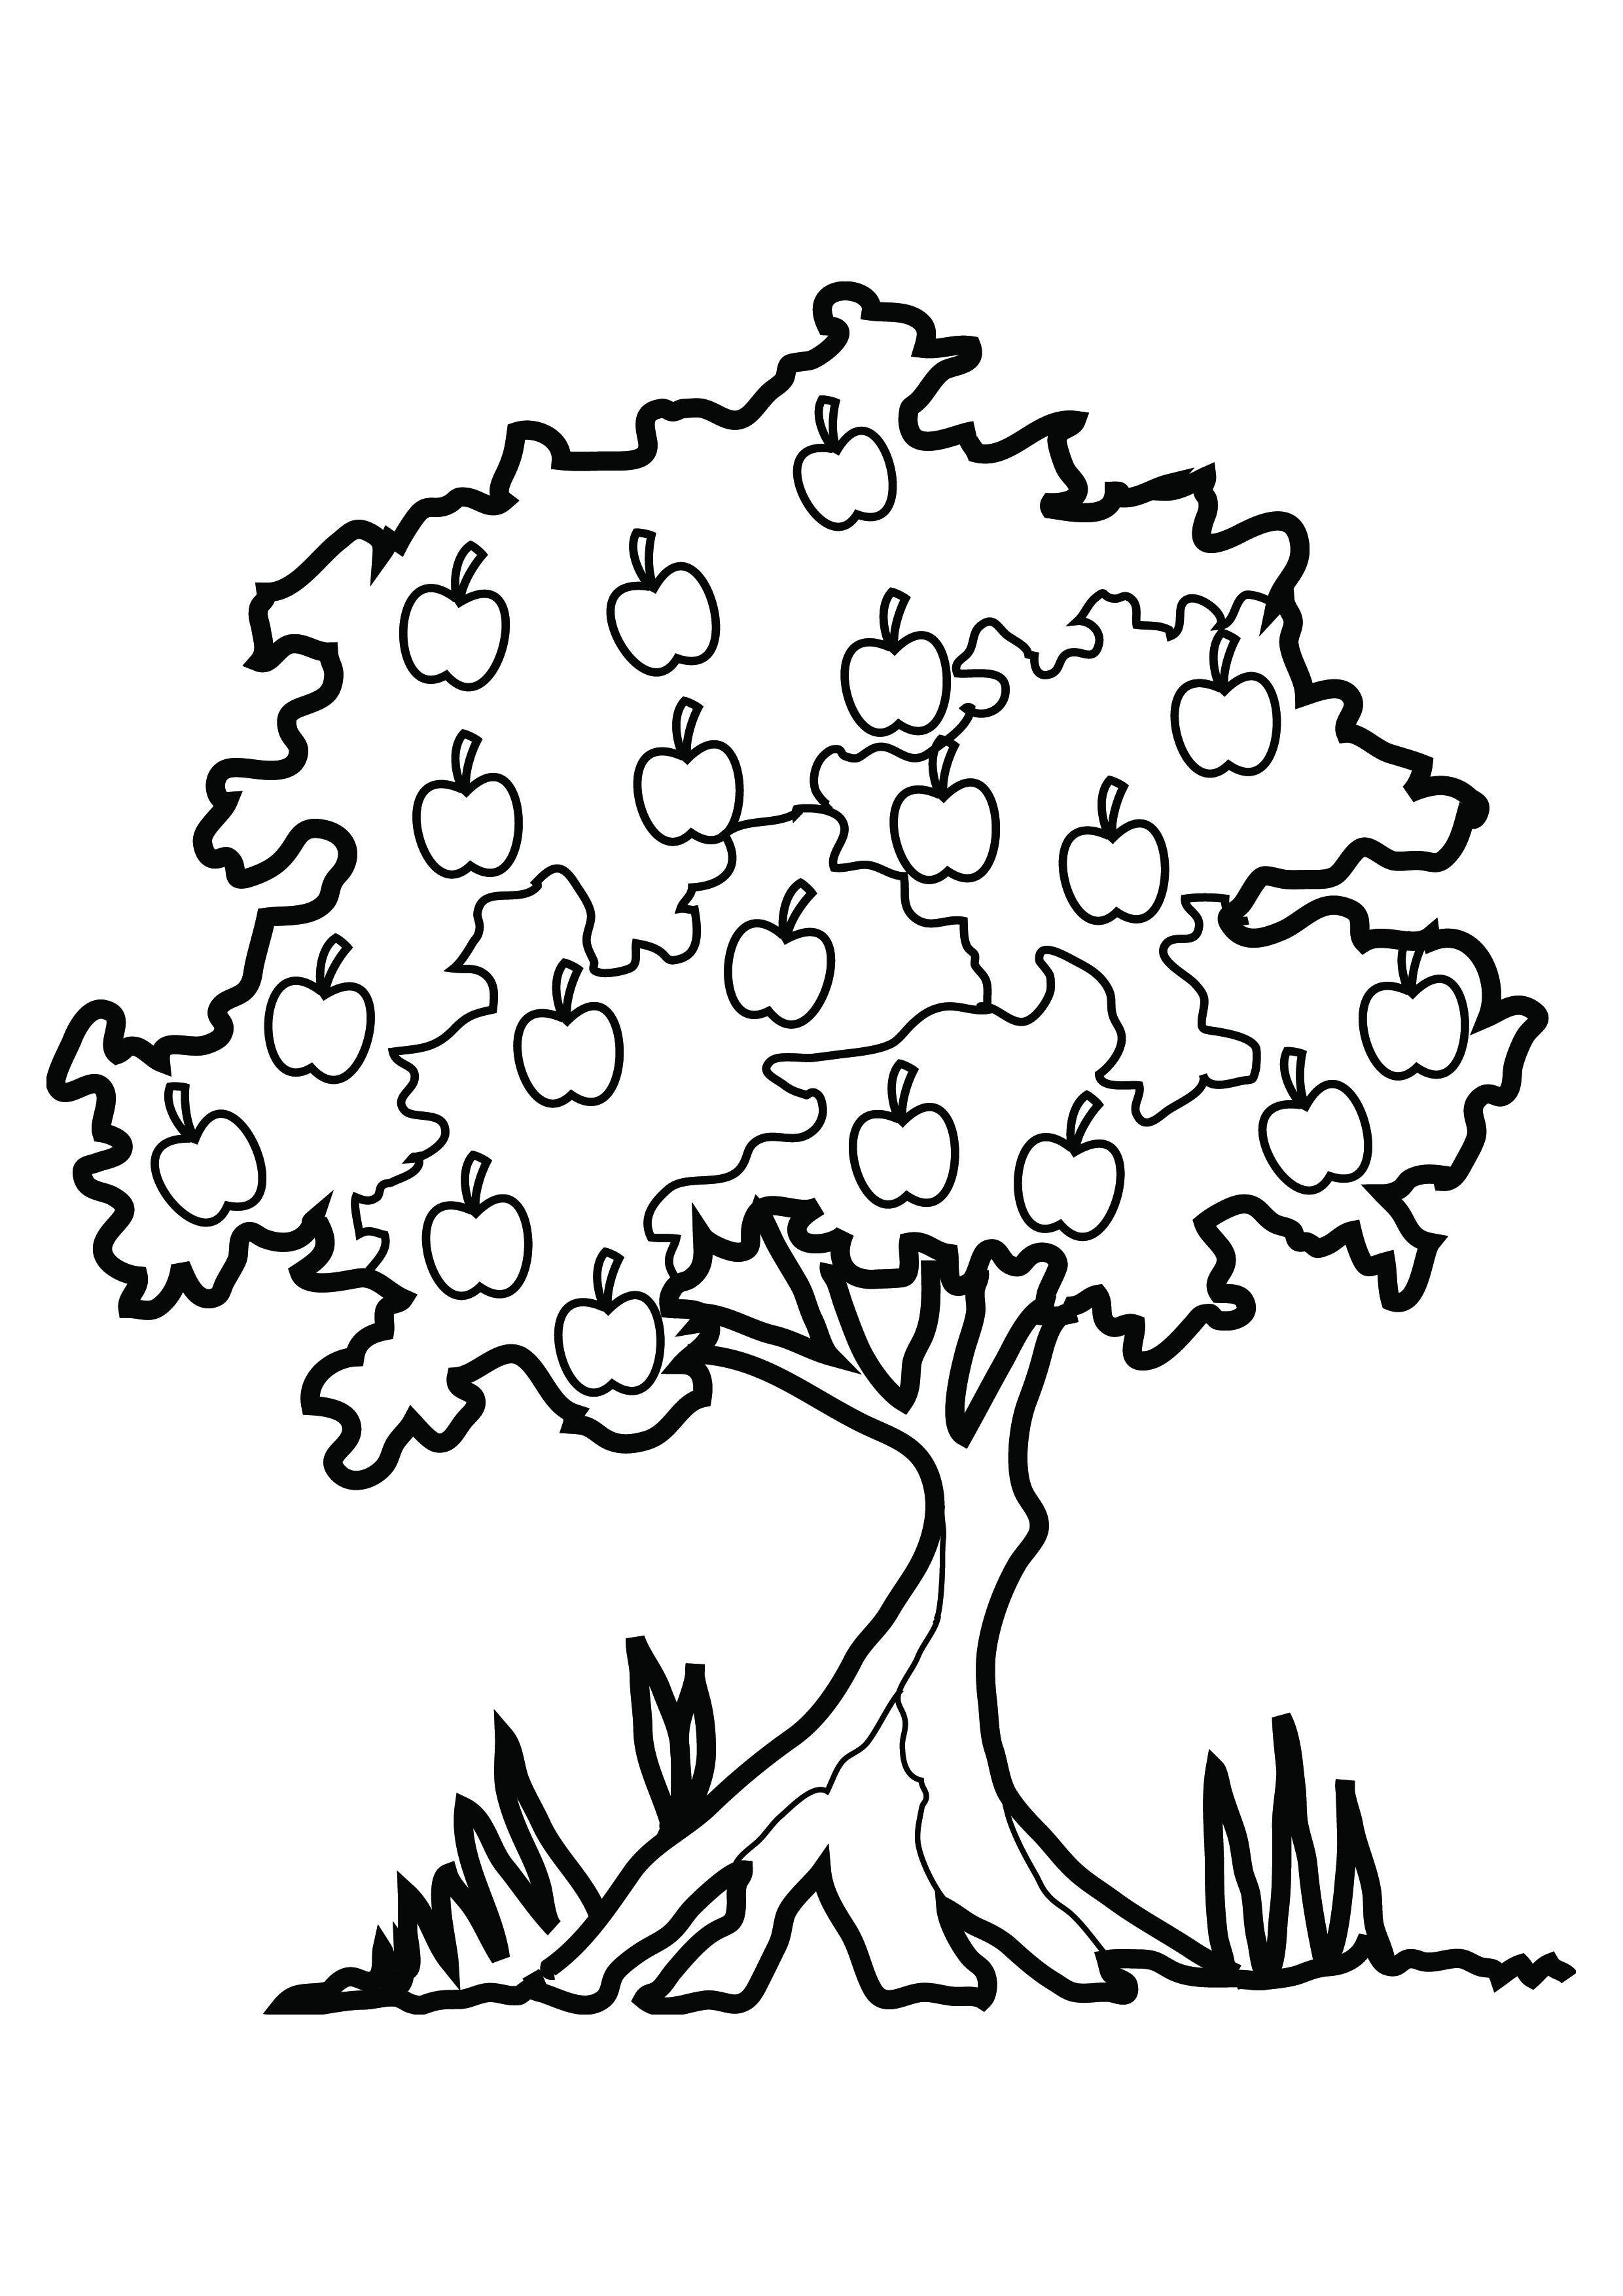 2480x3508 Awesome Pictures Of Trees To Color Colouring For Cure Three